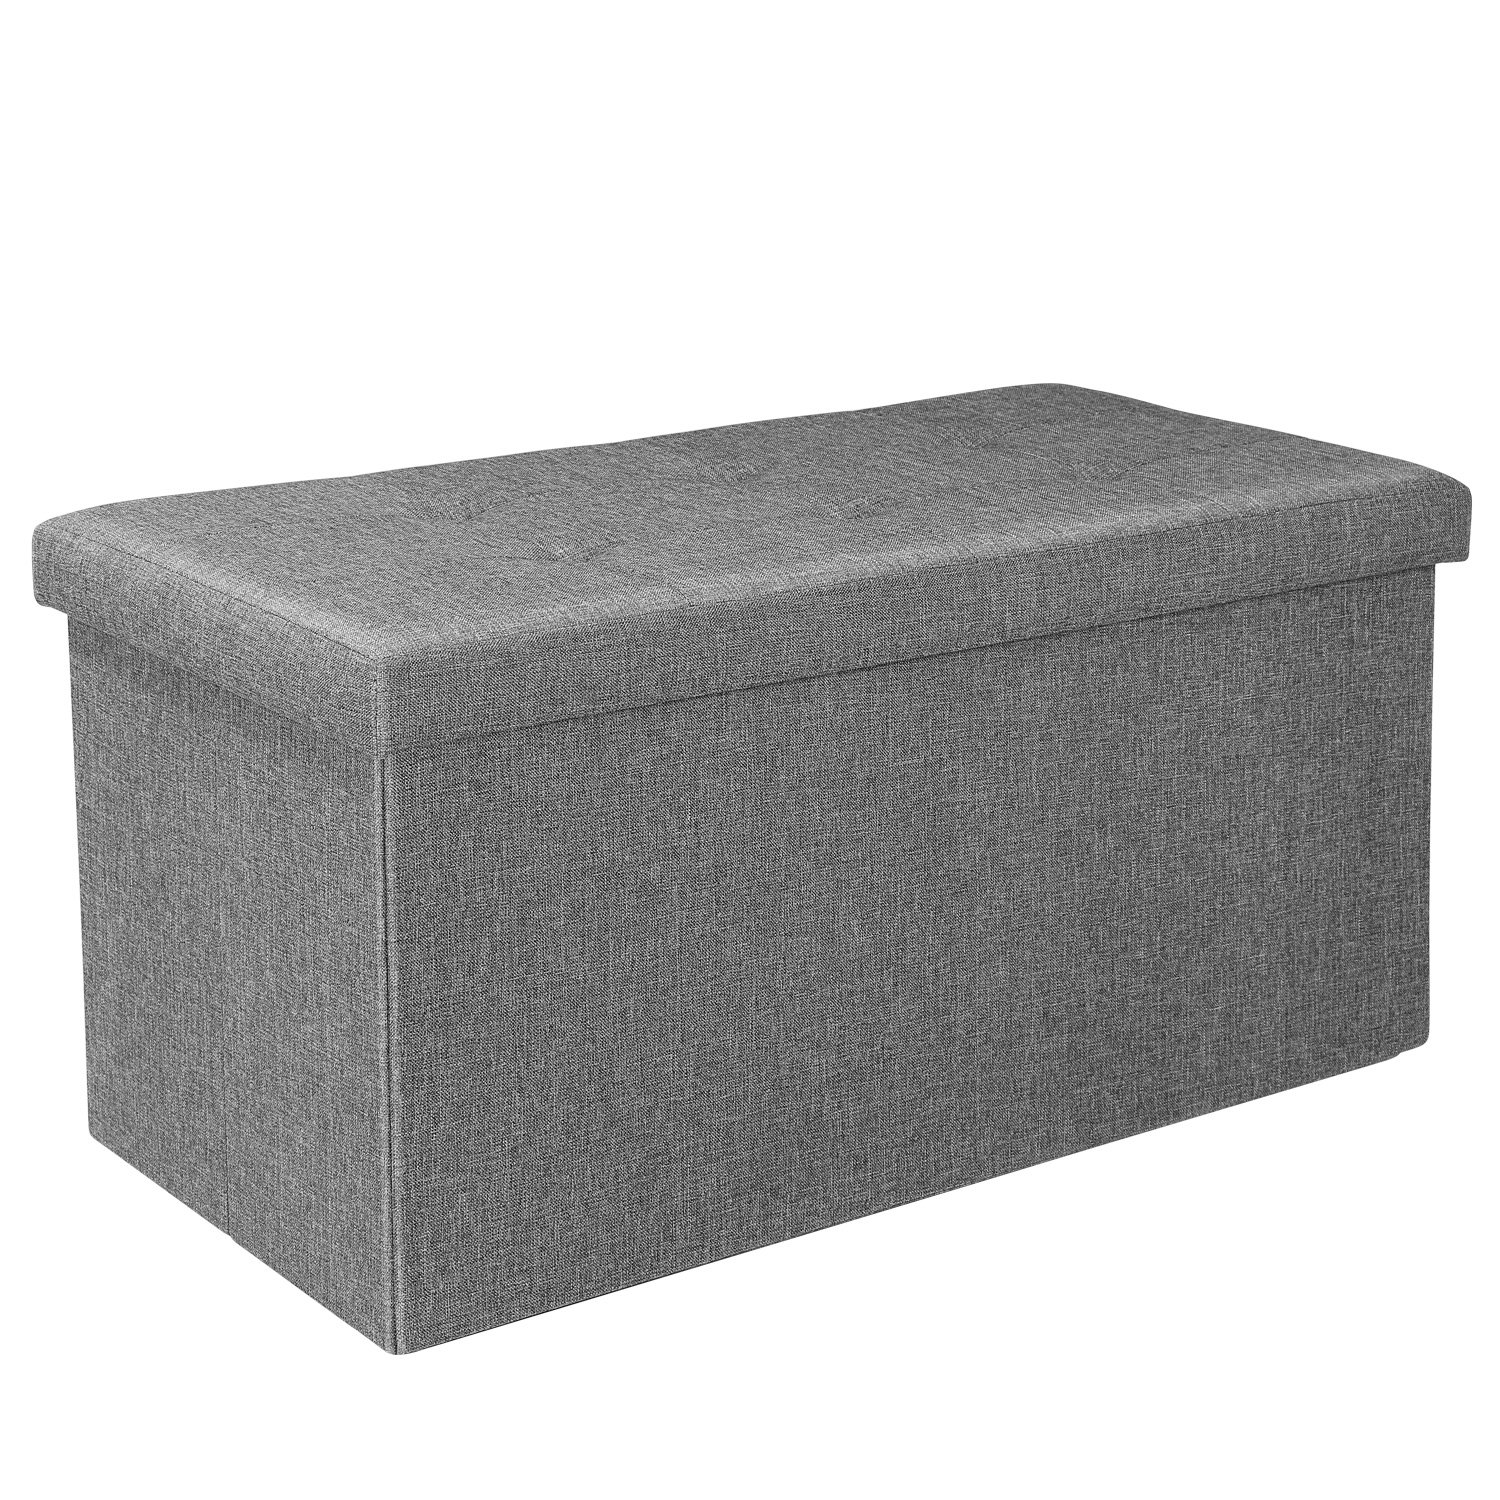 Ottomans Lucia Storage Chest Grey Fabric: Grey Ottoman Storage Boxes Double Seat Footstool Linen